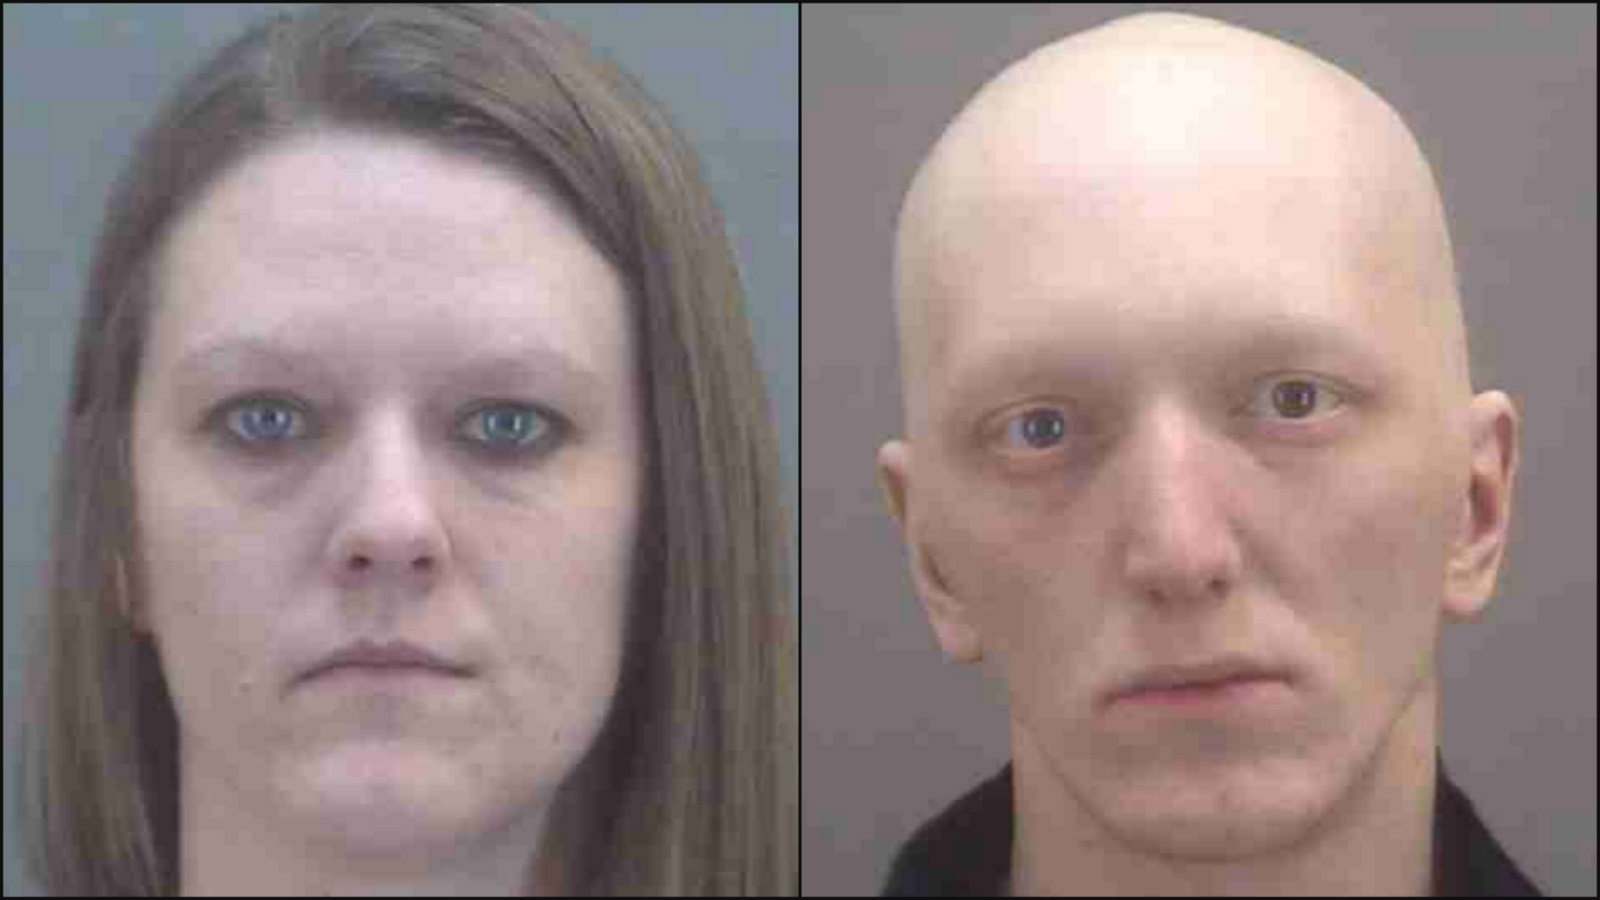 April Slone (left) and Cody Fugate (right) (Photo//LaGrange County Sheriff's Department)